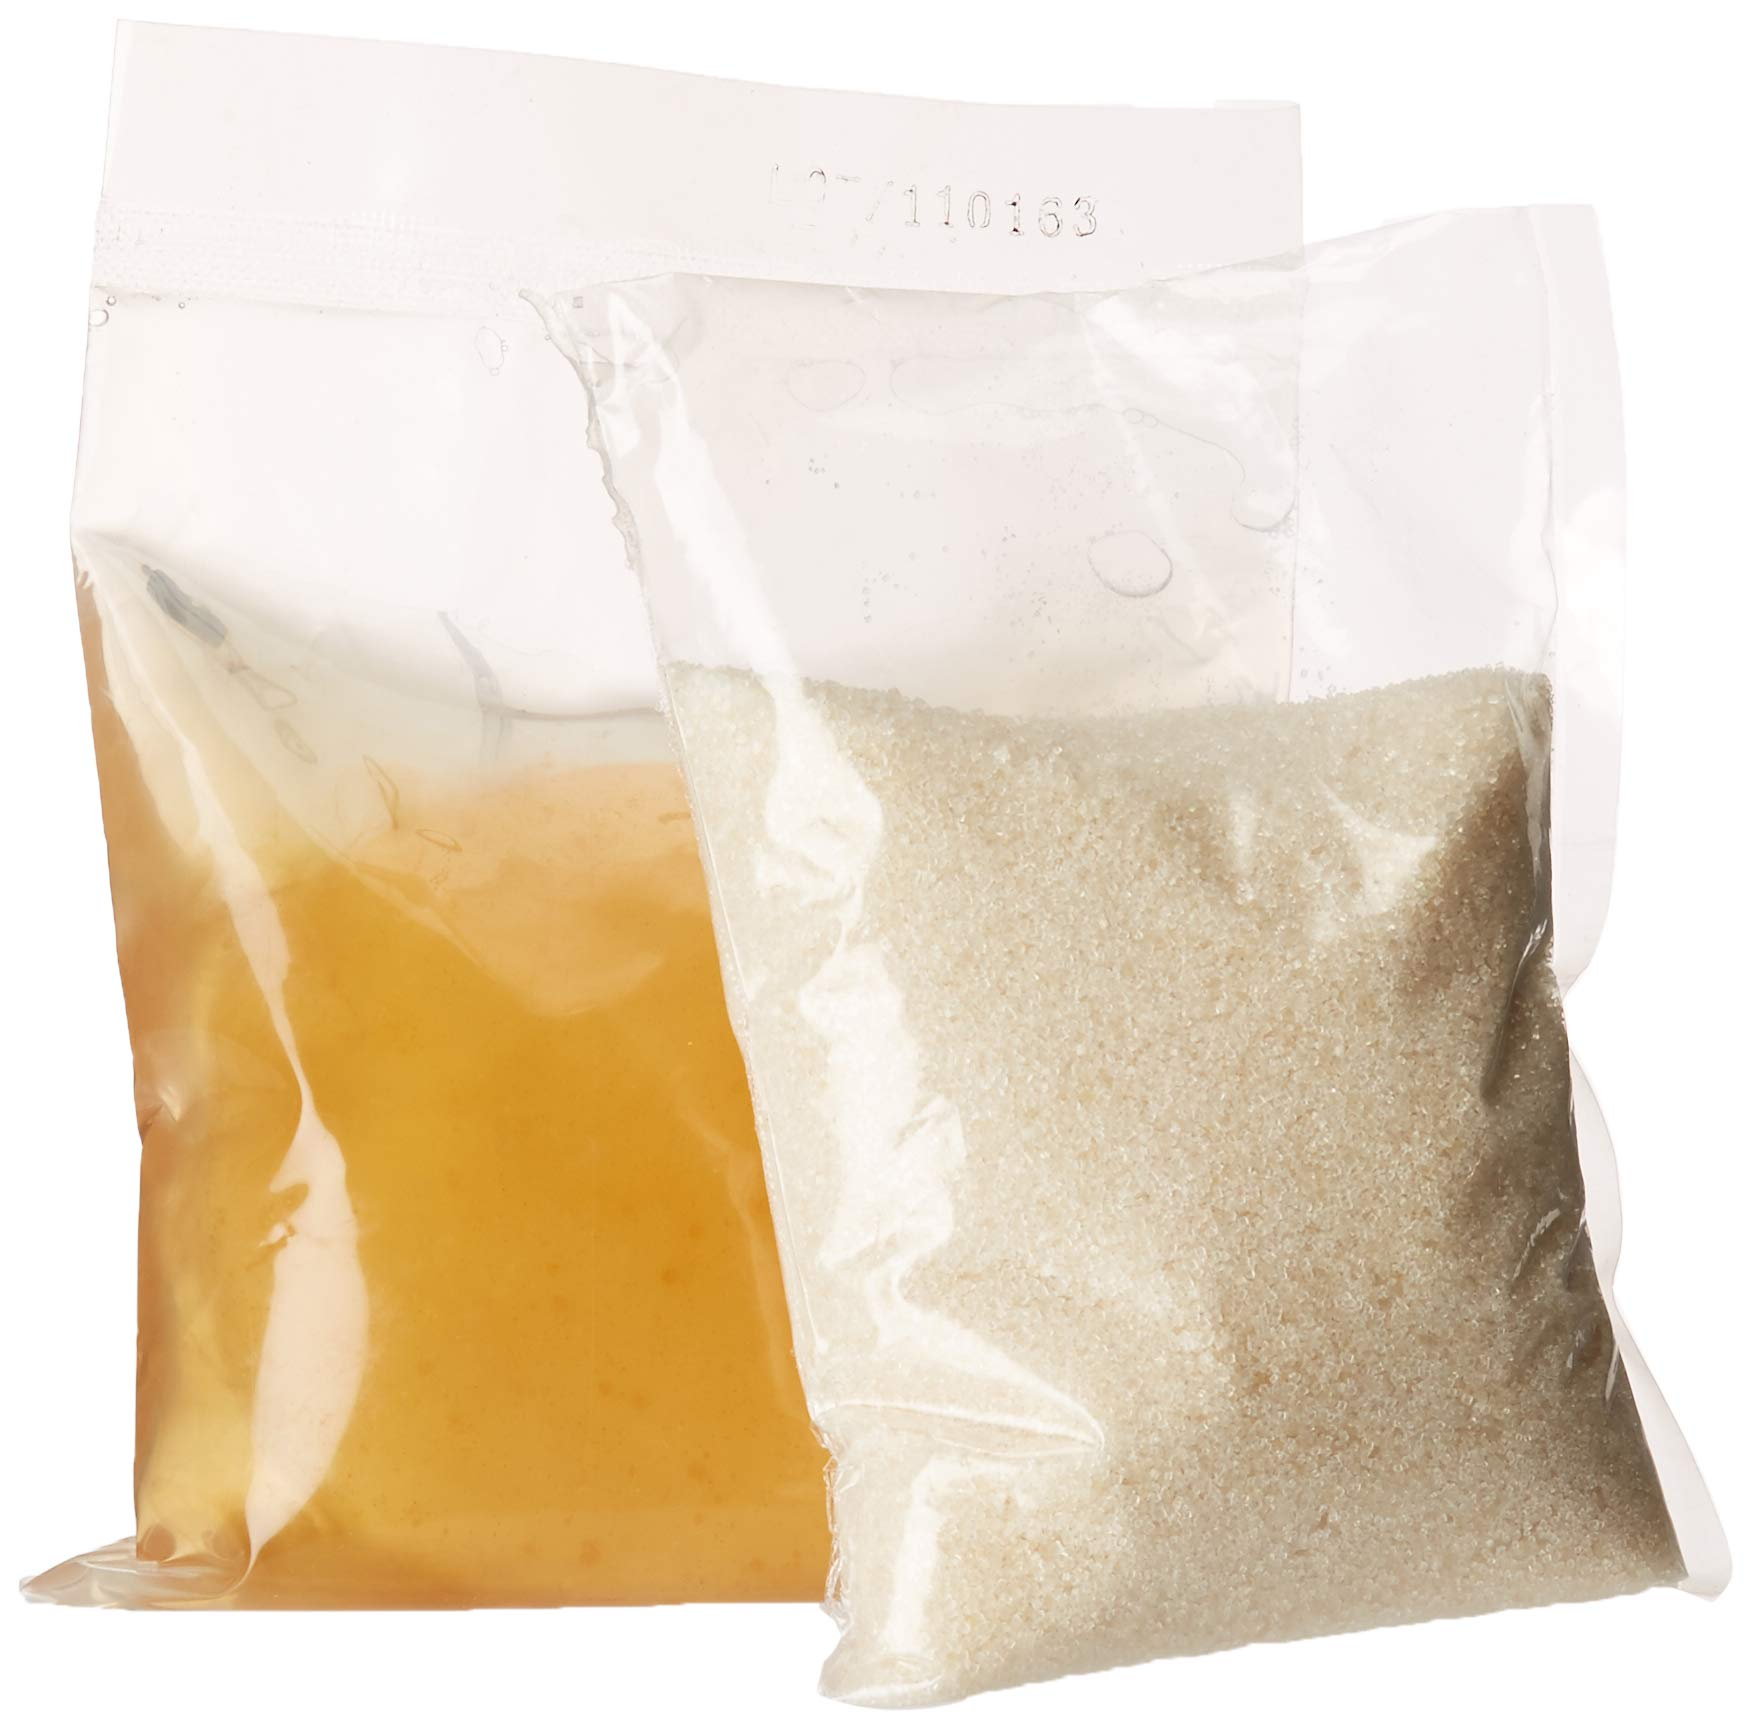 Kombucha Starter Kit .Premium Kombucha Brewing Ingredients included and Fresh Kombucha SCOBY, Durable Glass 1 Gallon Mason Jar, Temp Strip, PH Tests and Funnel included by Miloo (Image #2)